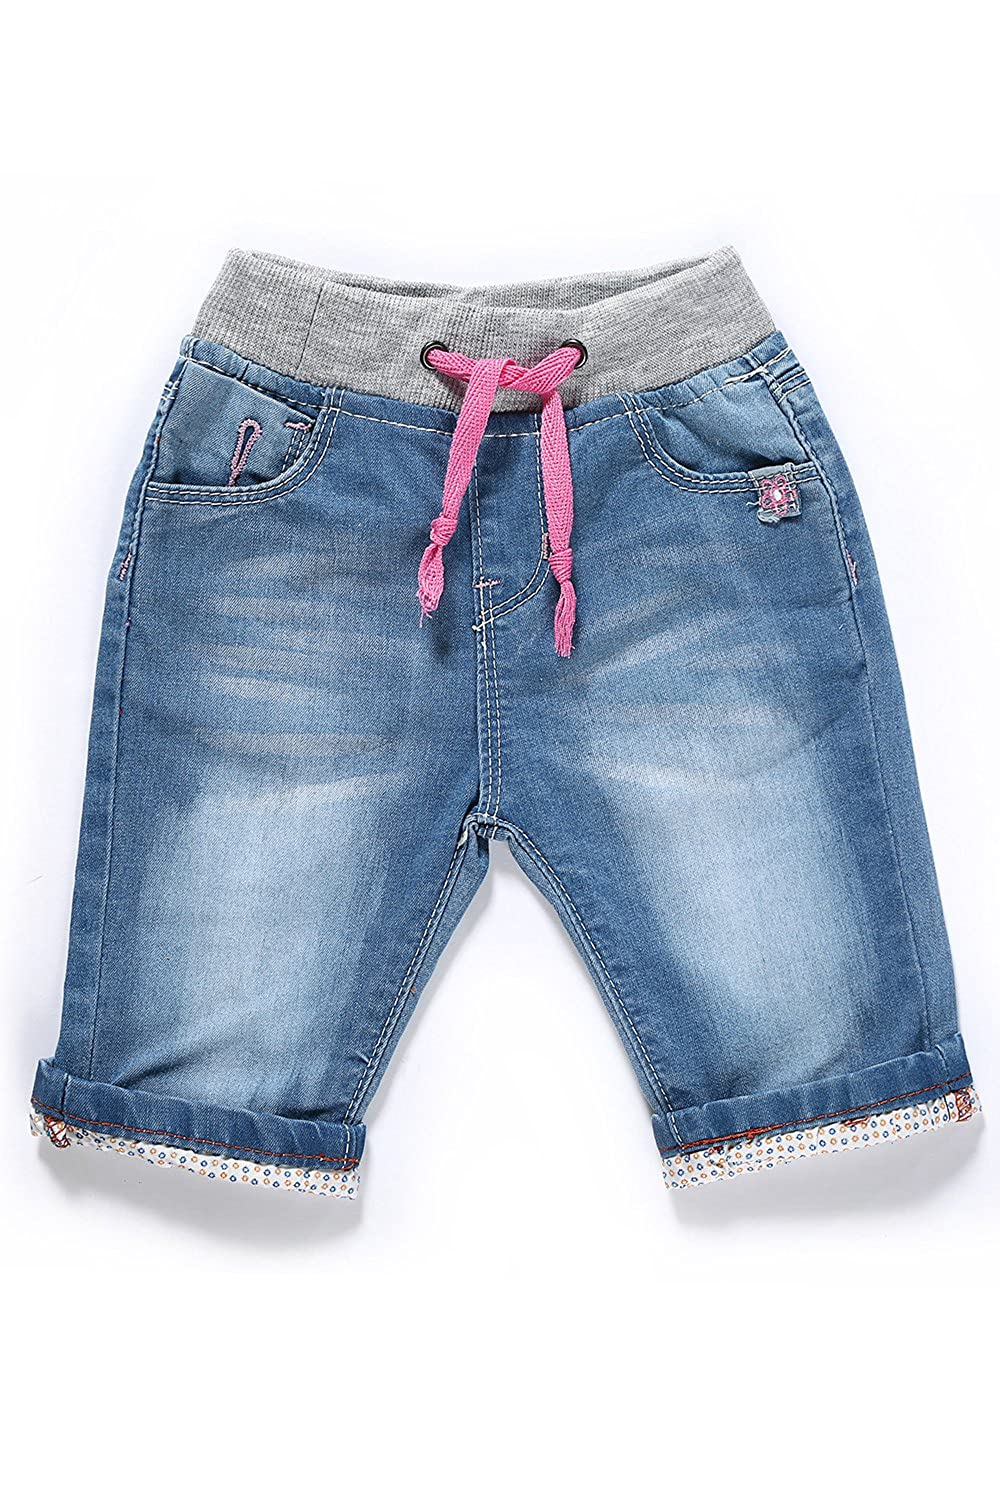 LITTLE-GUEST Baby Girls' Blue Knee-Length Jeans Shorts G205